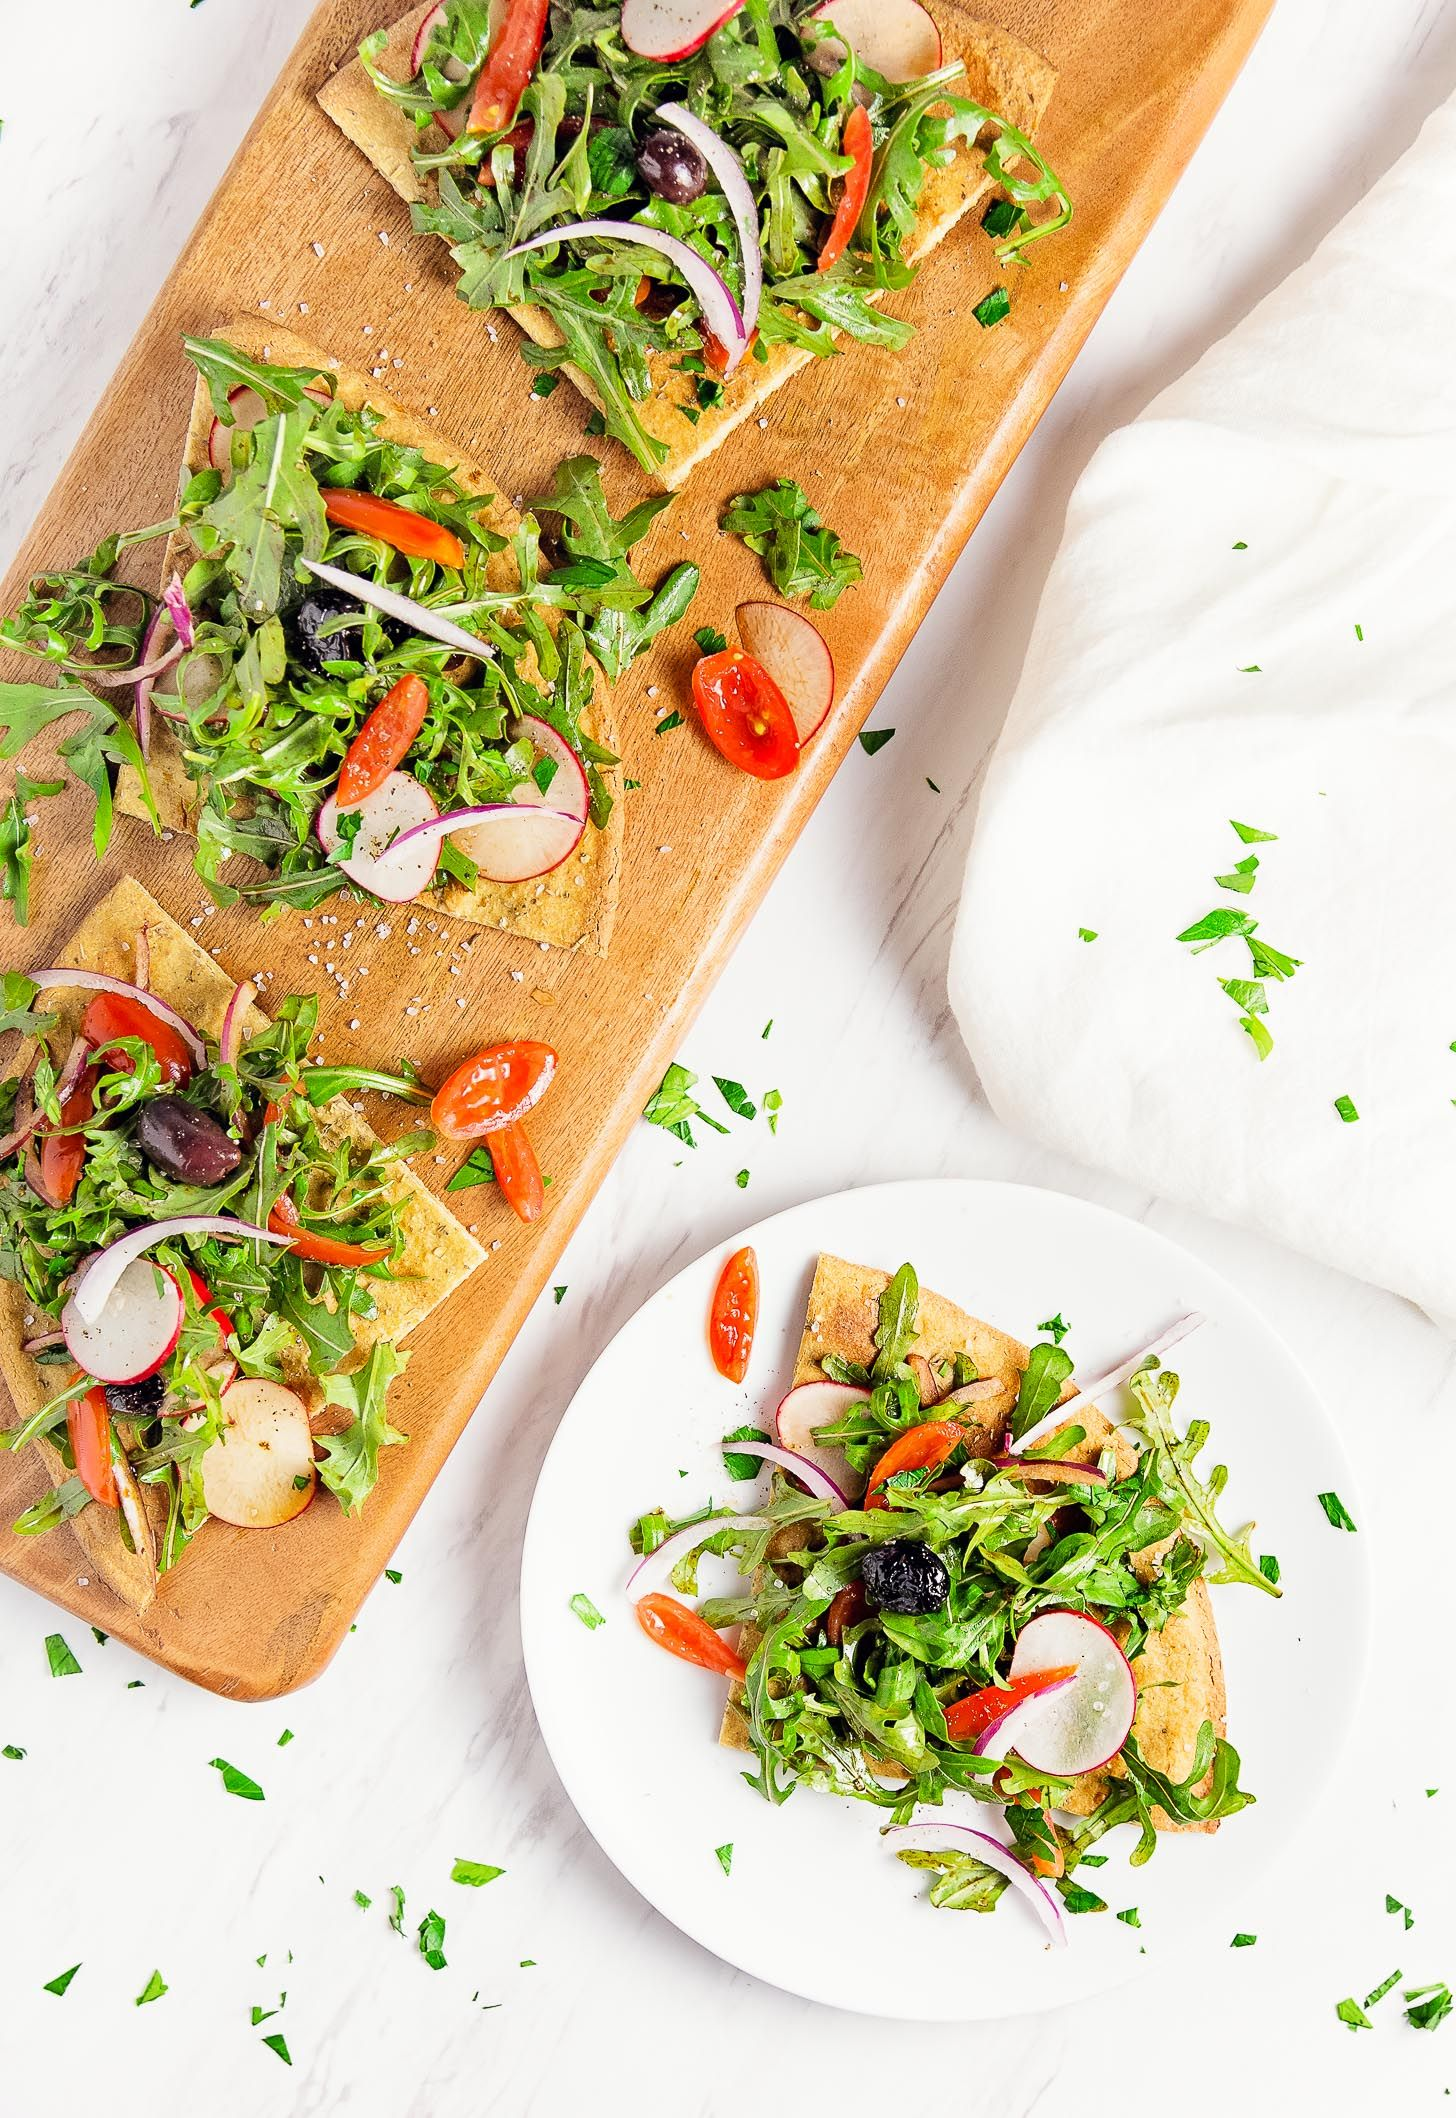 Basic Quinoa Flatbread